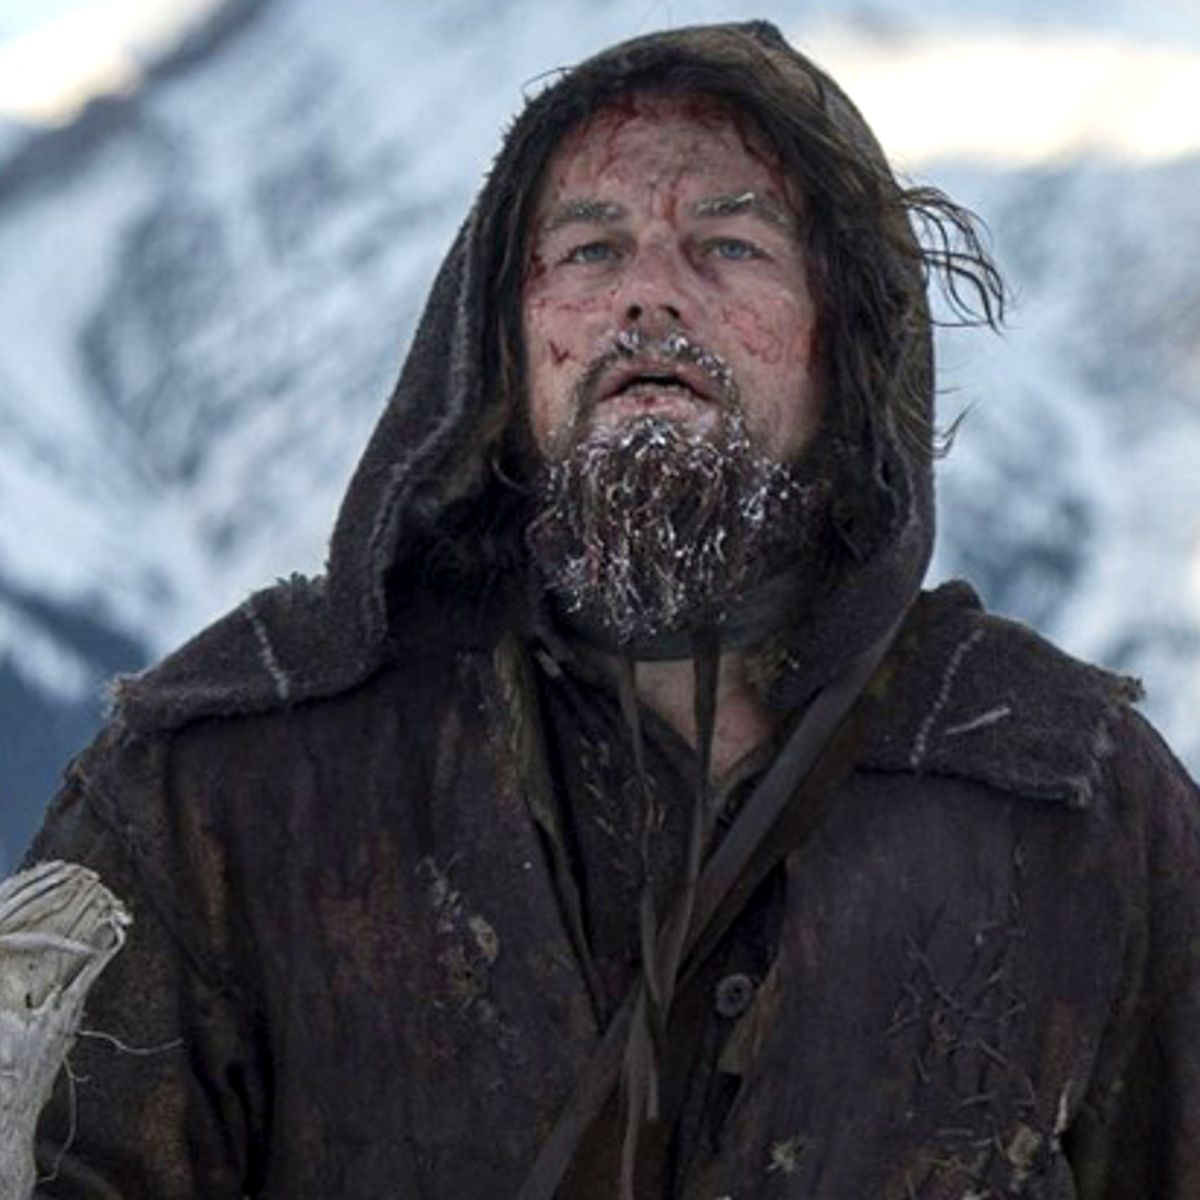 """The birth of """"extreme cinema"""": """"The Revenant"""" is an endurance test of suffering for Leonardo DiCaprio -- and moviegoers. But for what?"""